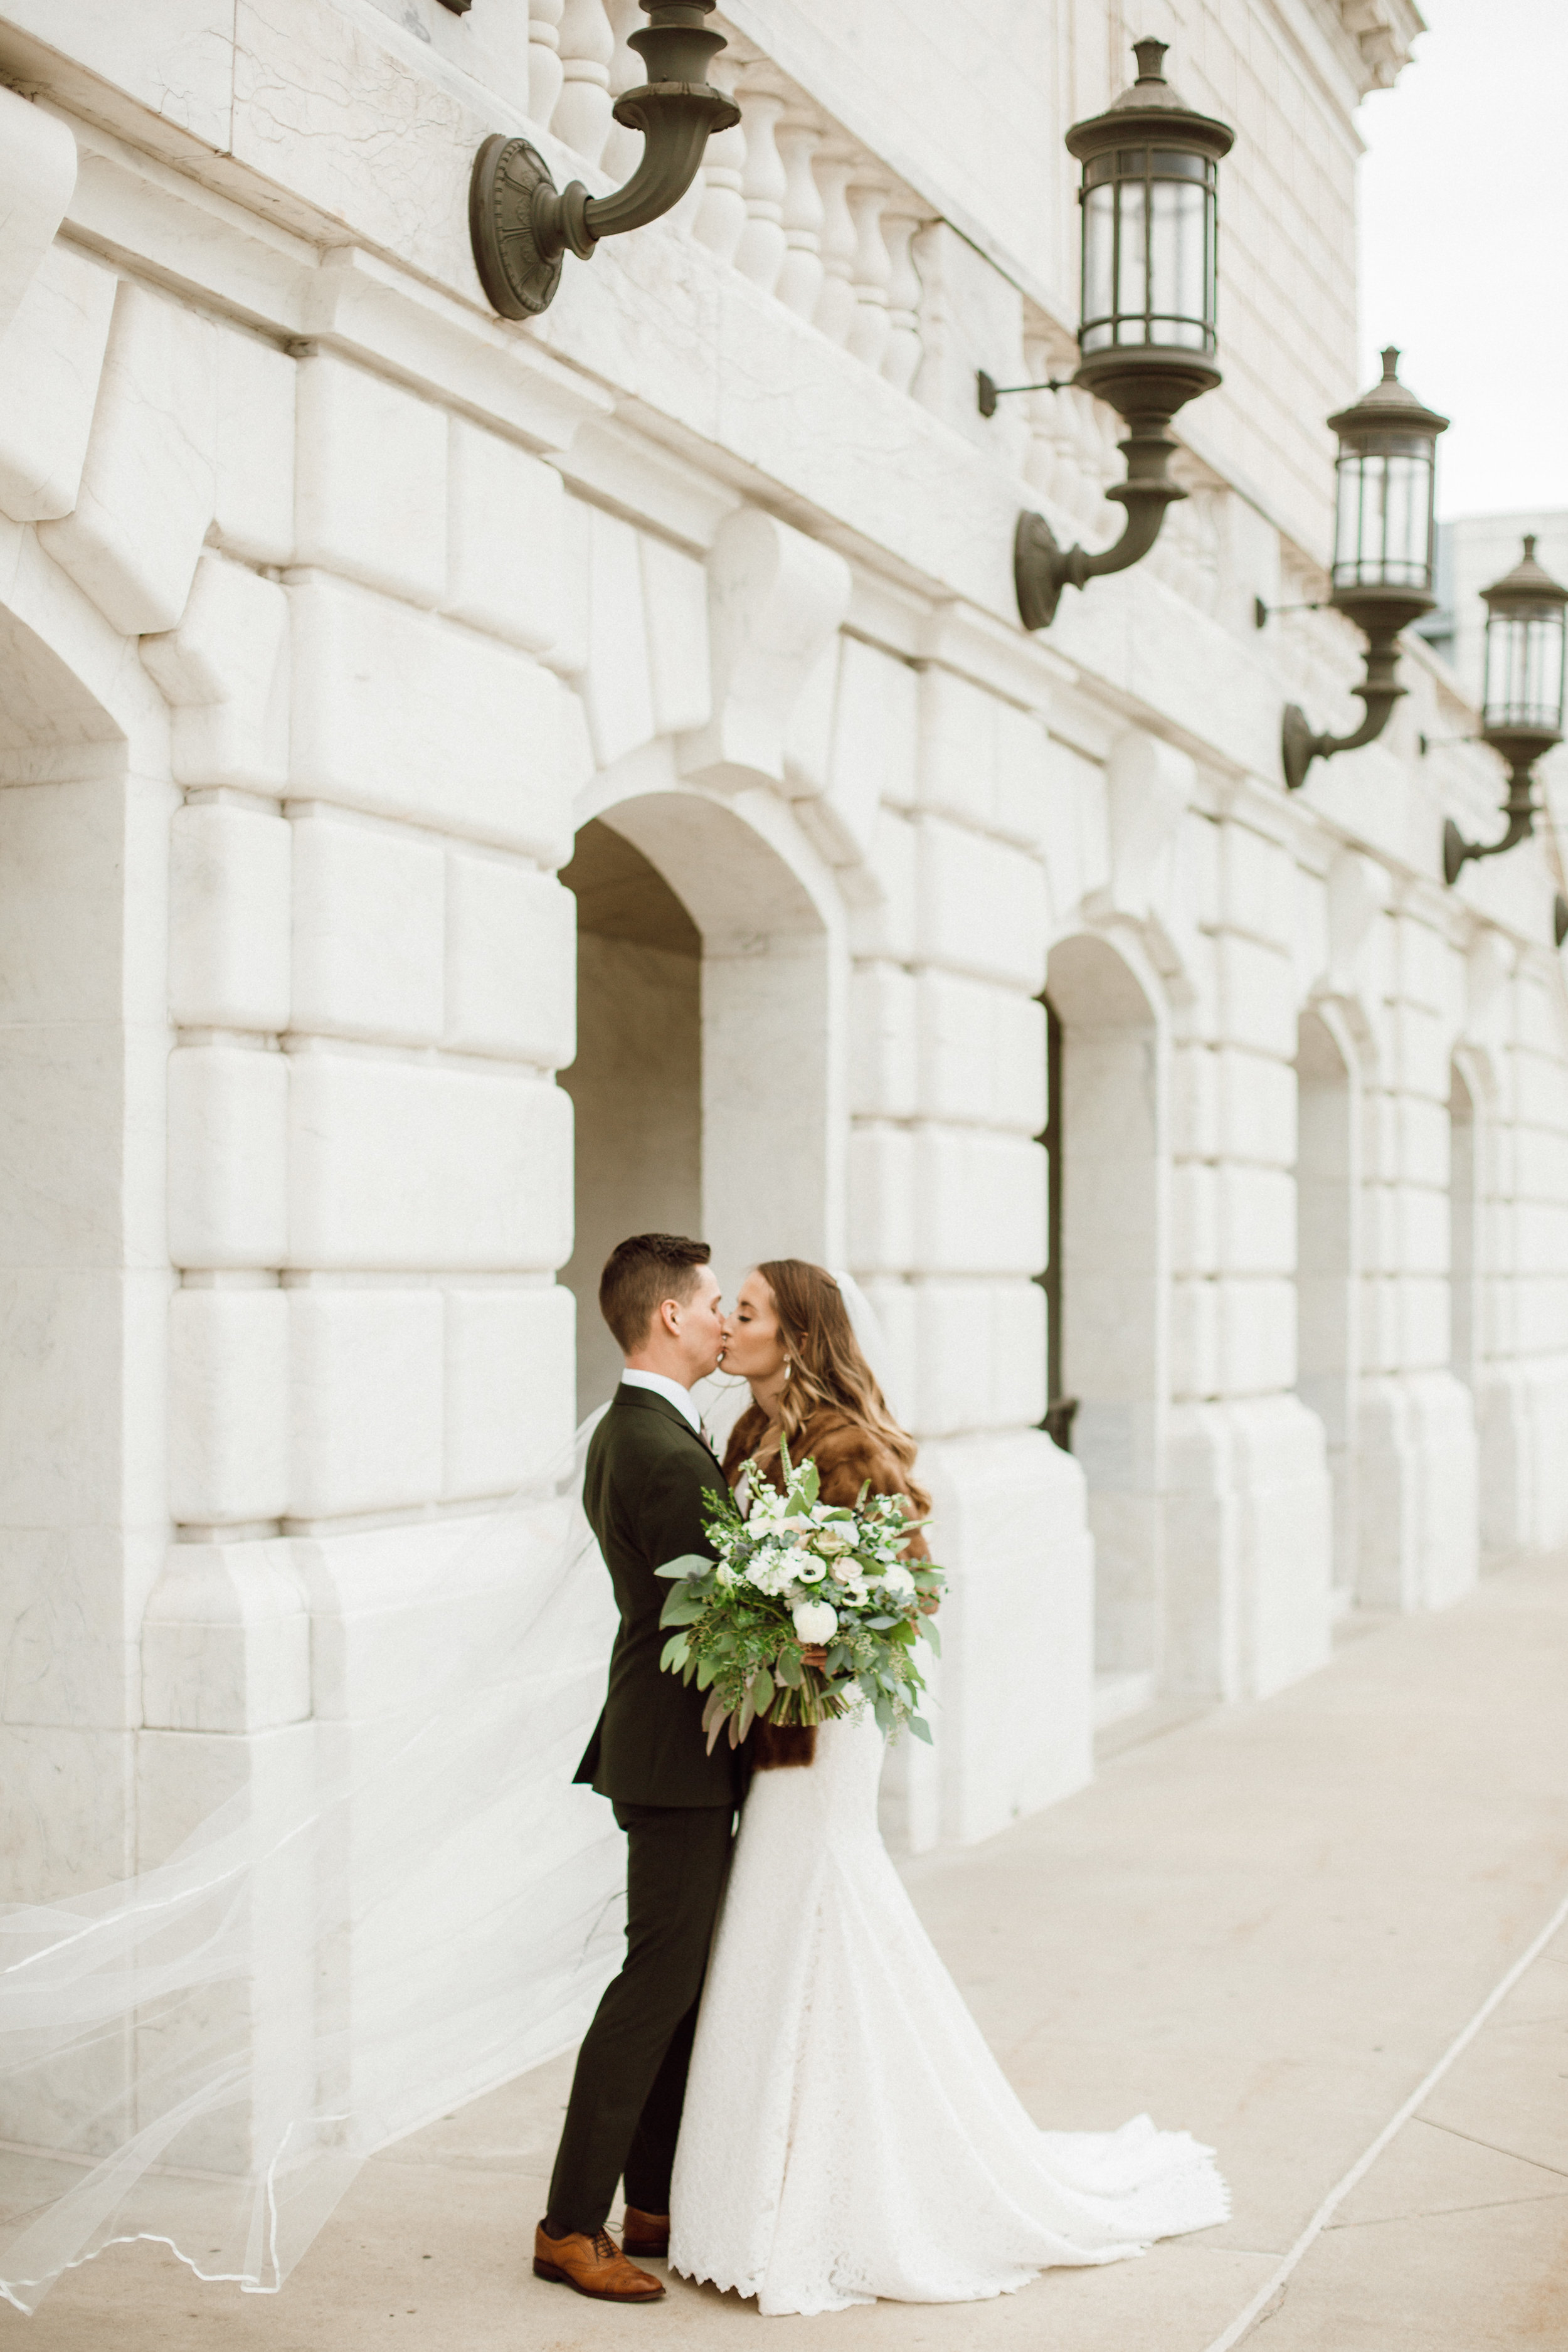 Katie_Vonasek_Photography_Ford_Piquette_Plant_Wedding_Detroit29.JPG